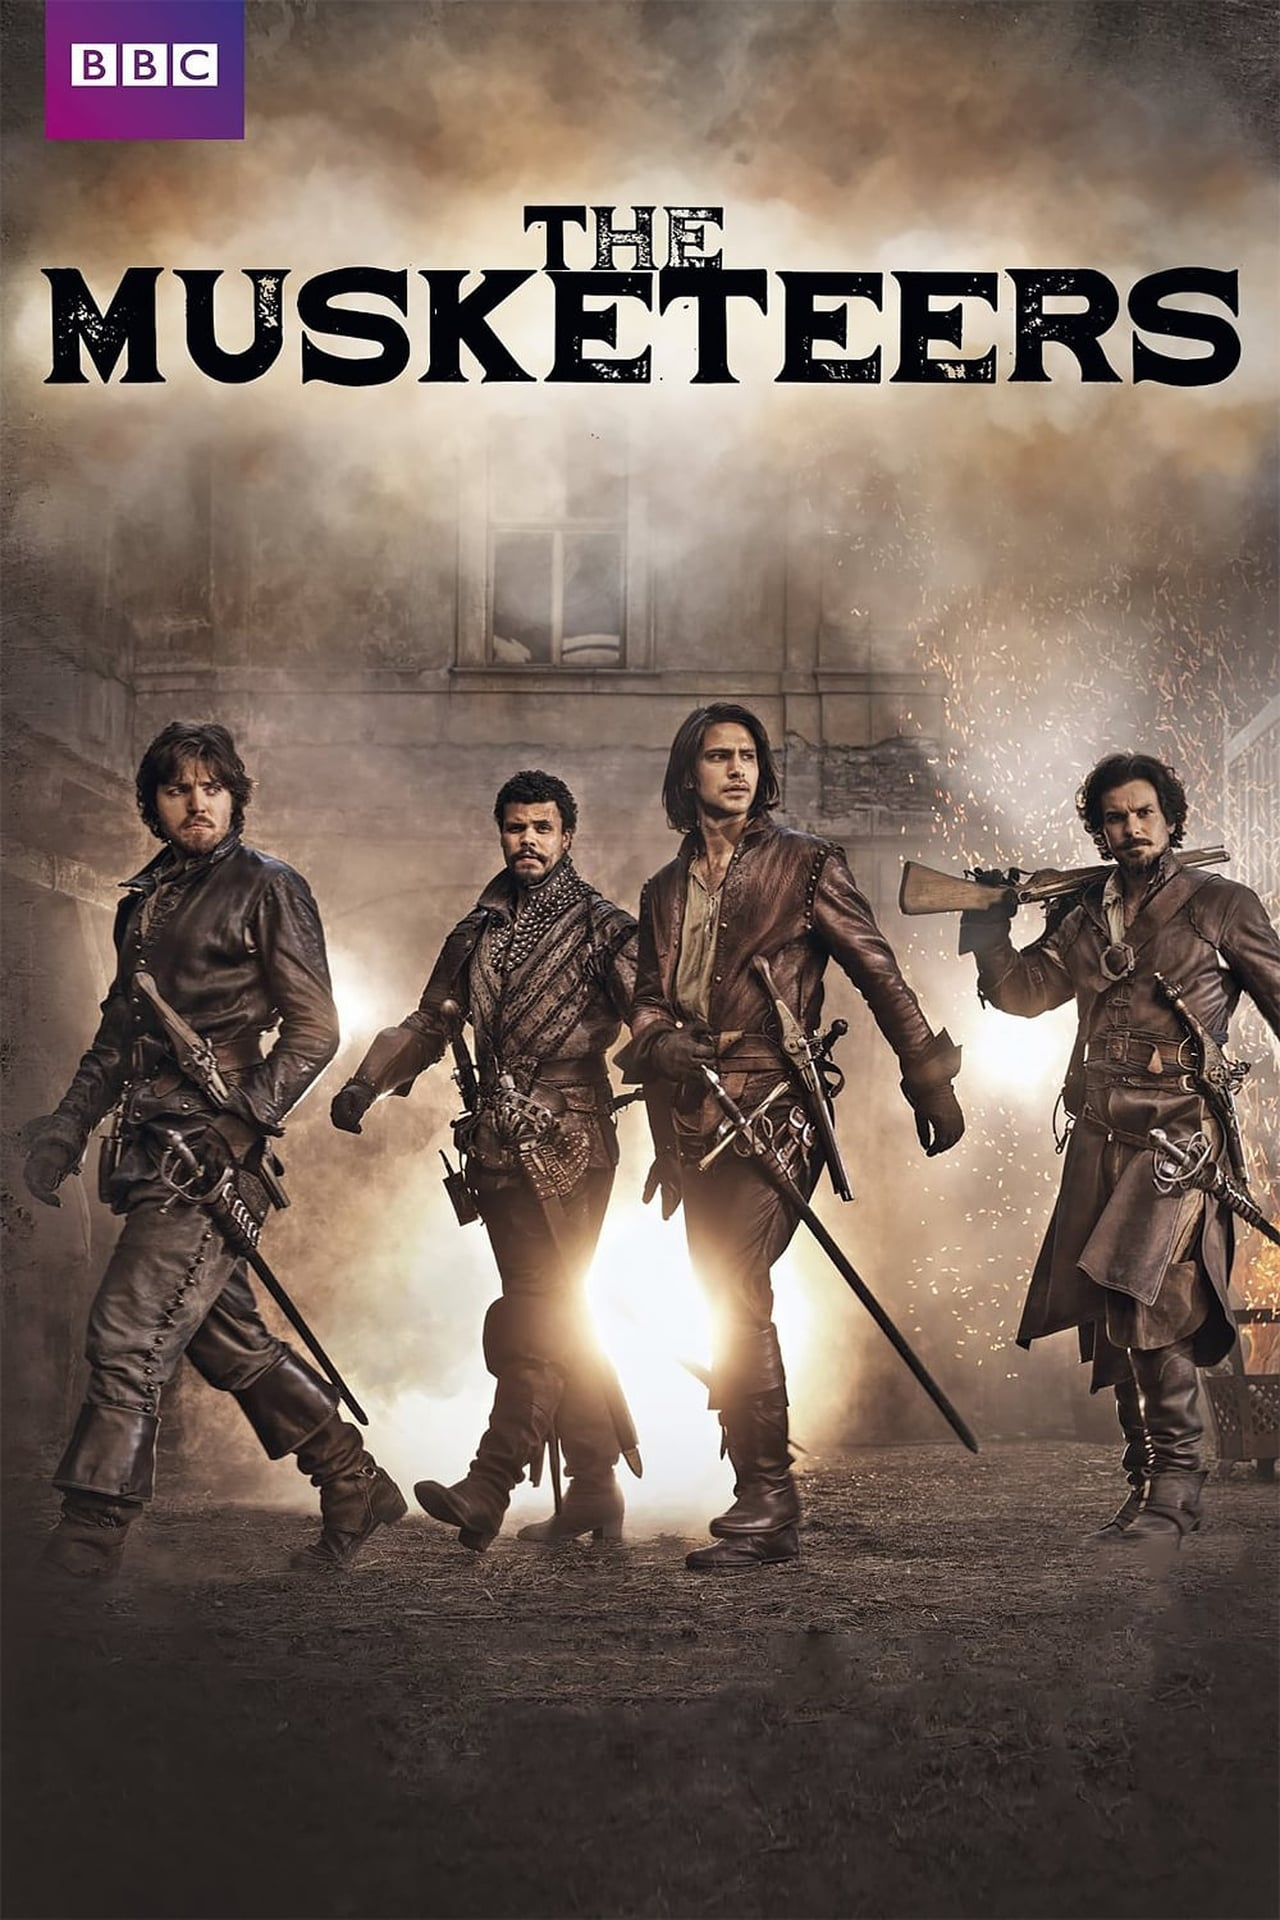 The Musketeers (season 2)